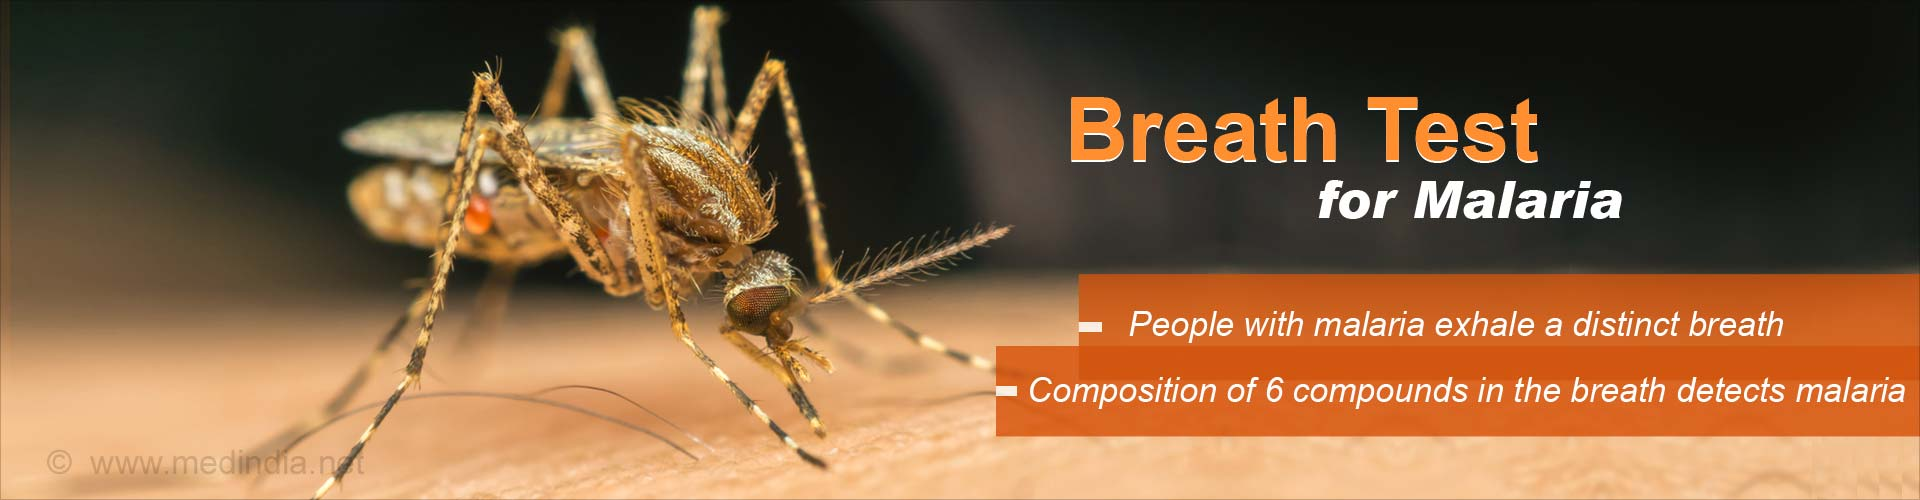 Breath-based Diagnostic Test to Determine Malarial Infection